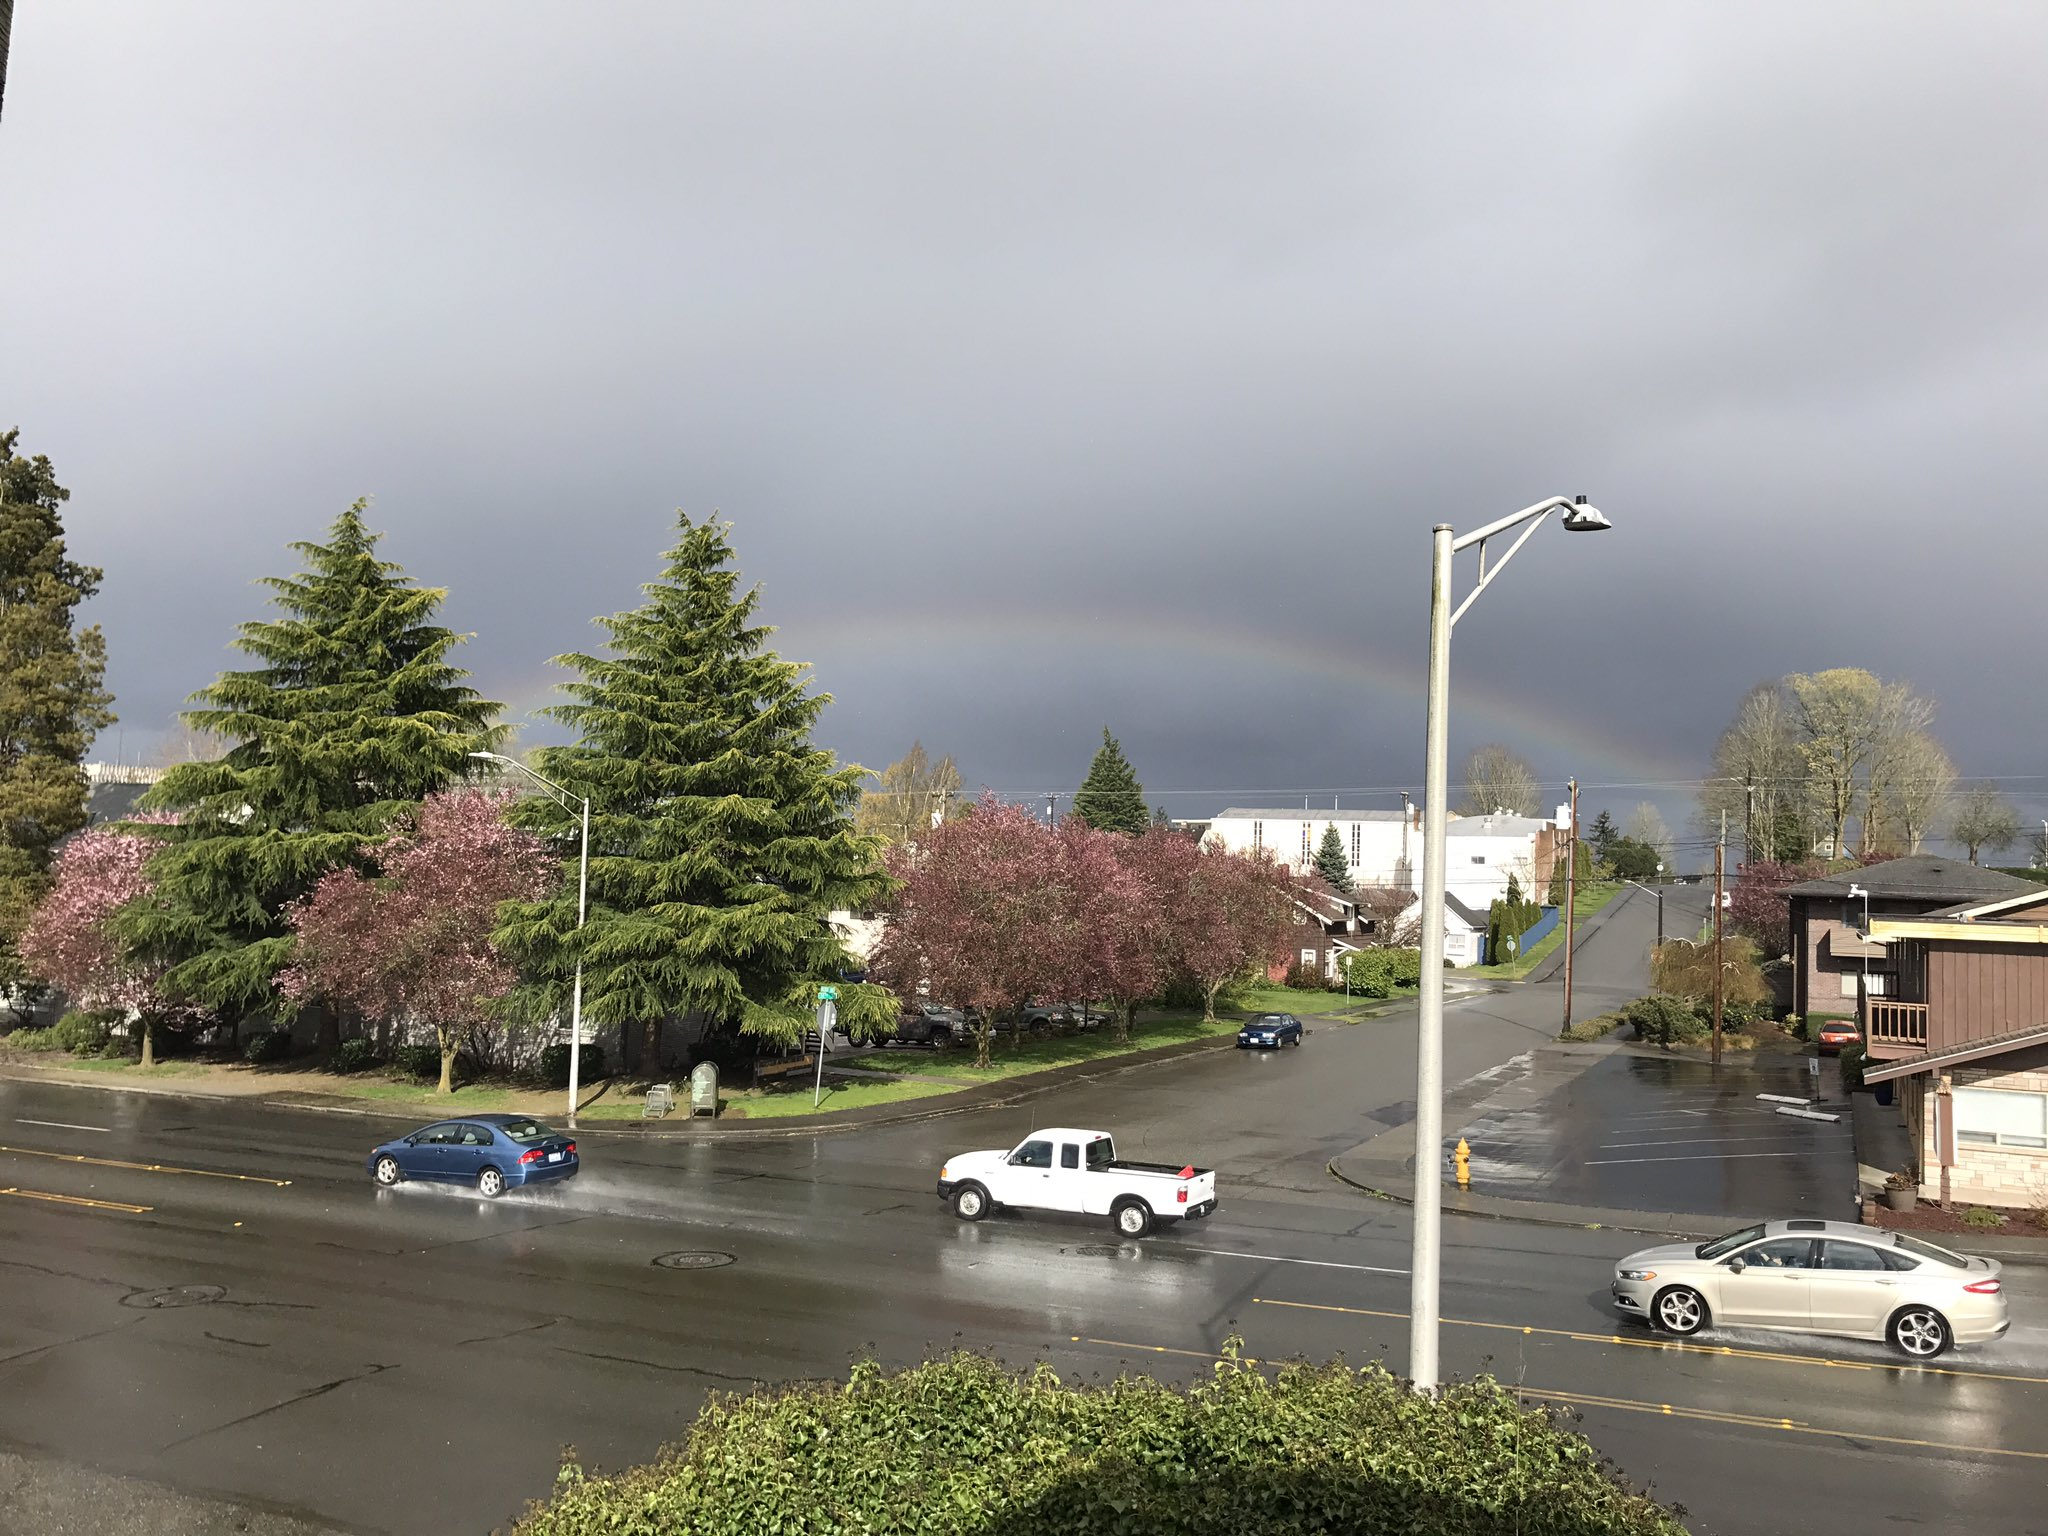 A rainbow is seen in the sky in Everett, Wash. Monday, April 10, 2017. (Photo: Steven Shannon)